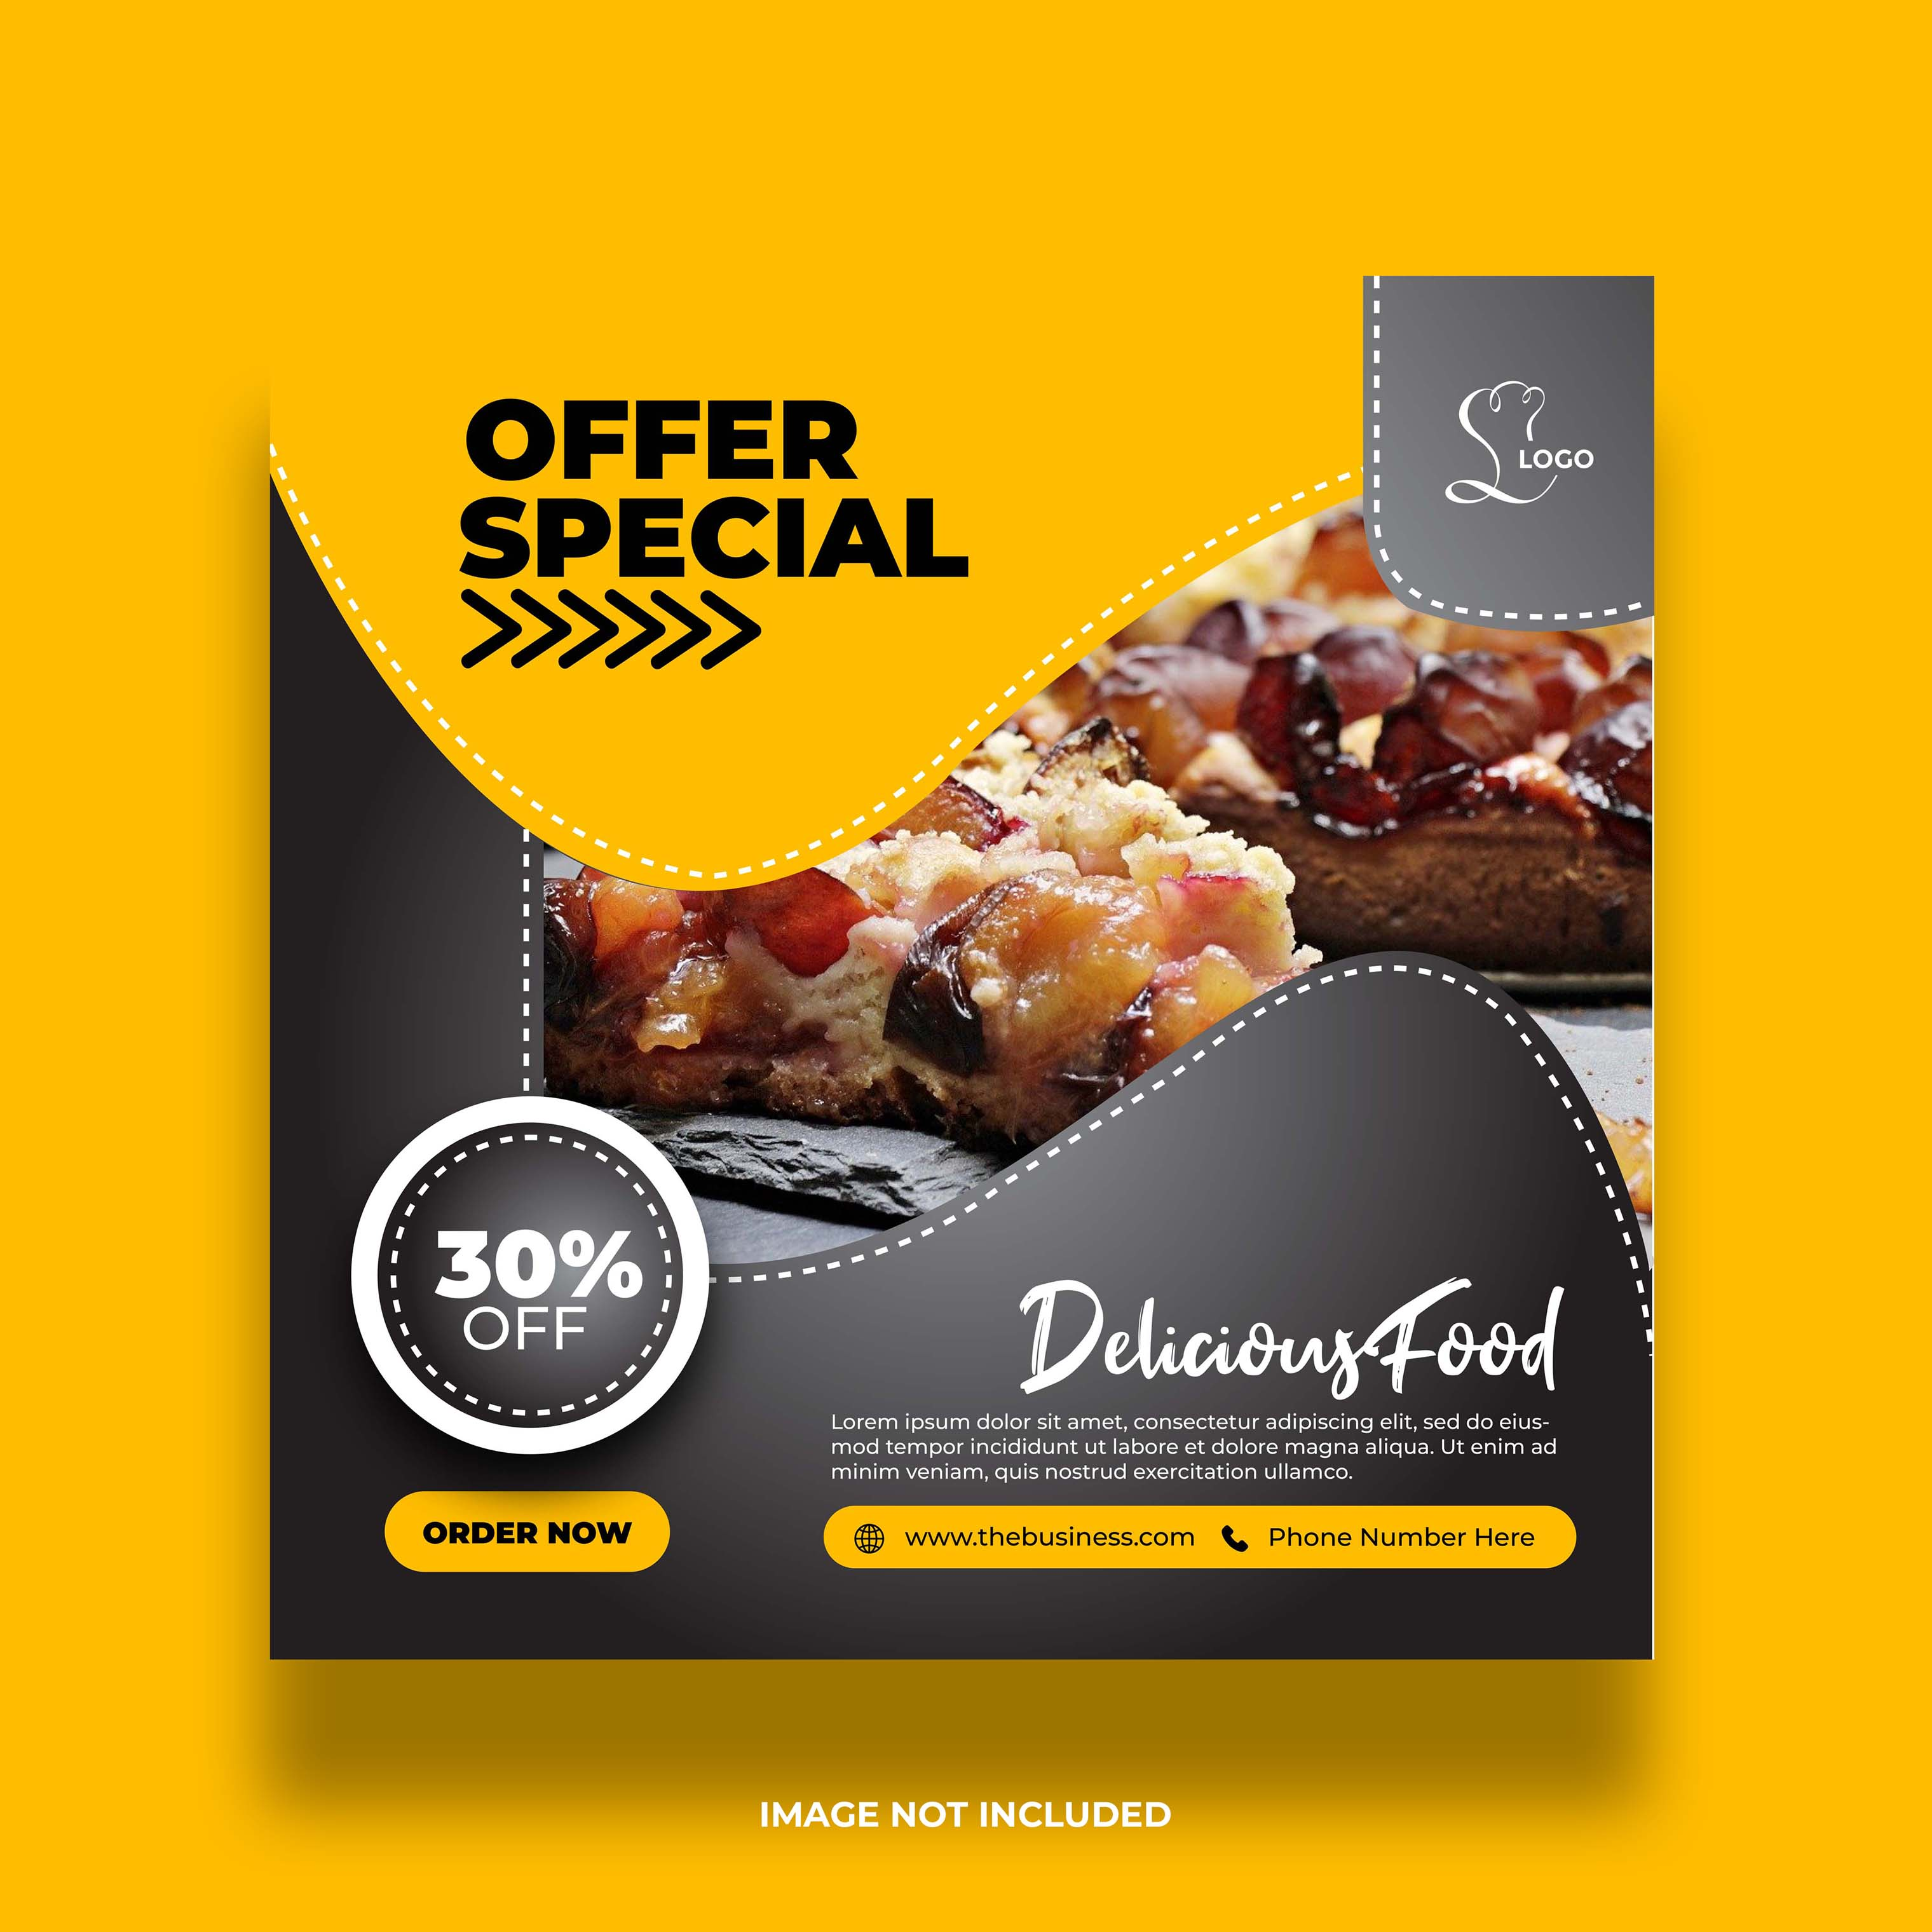 Creative Minimal Offer Special Food Banner For Social Media